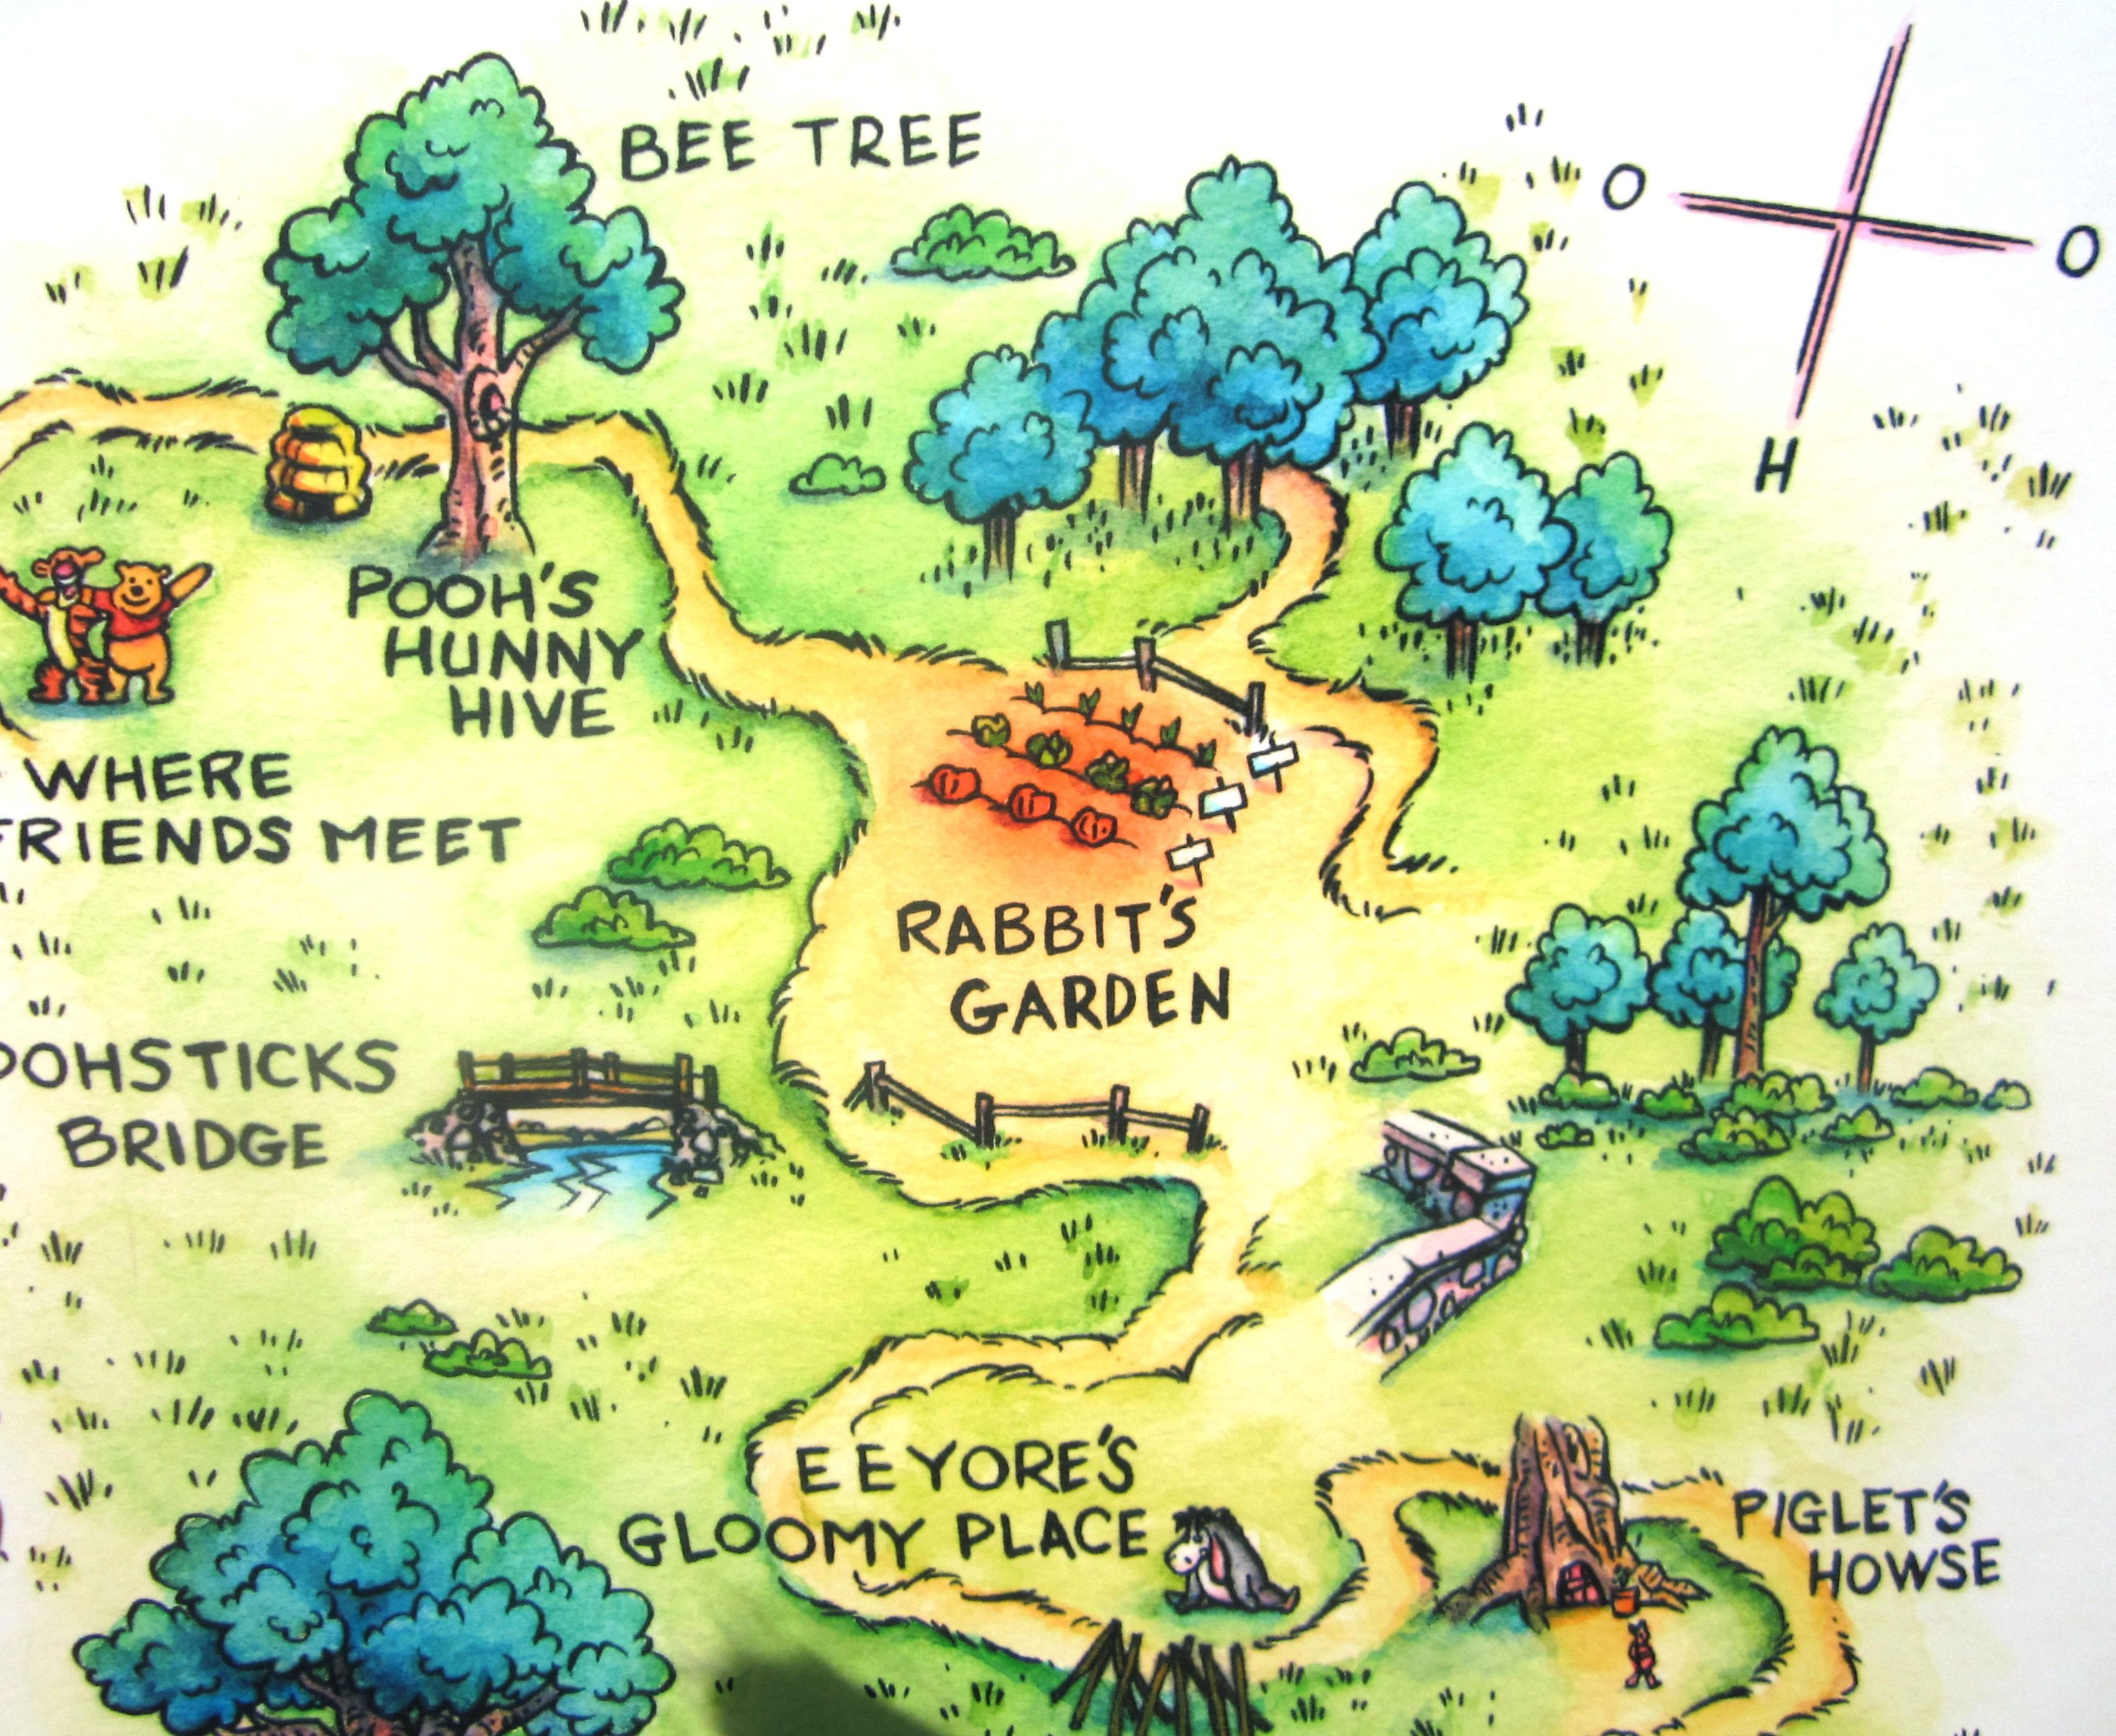 the hundred acre woods from the winnie the pooh book s is a